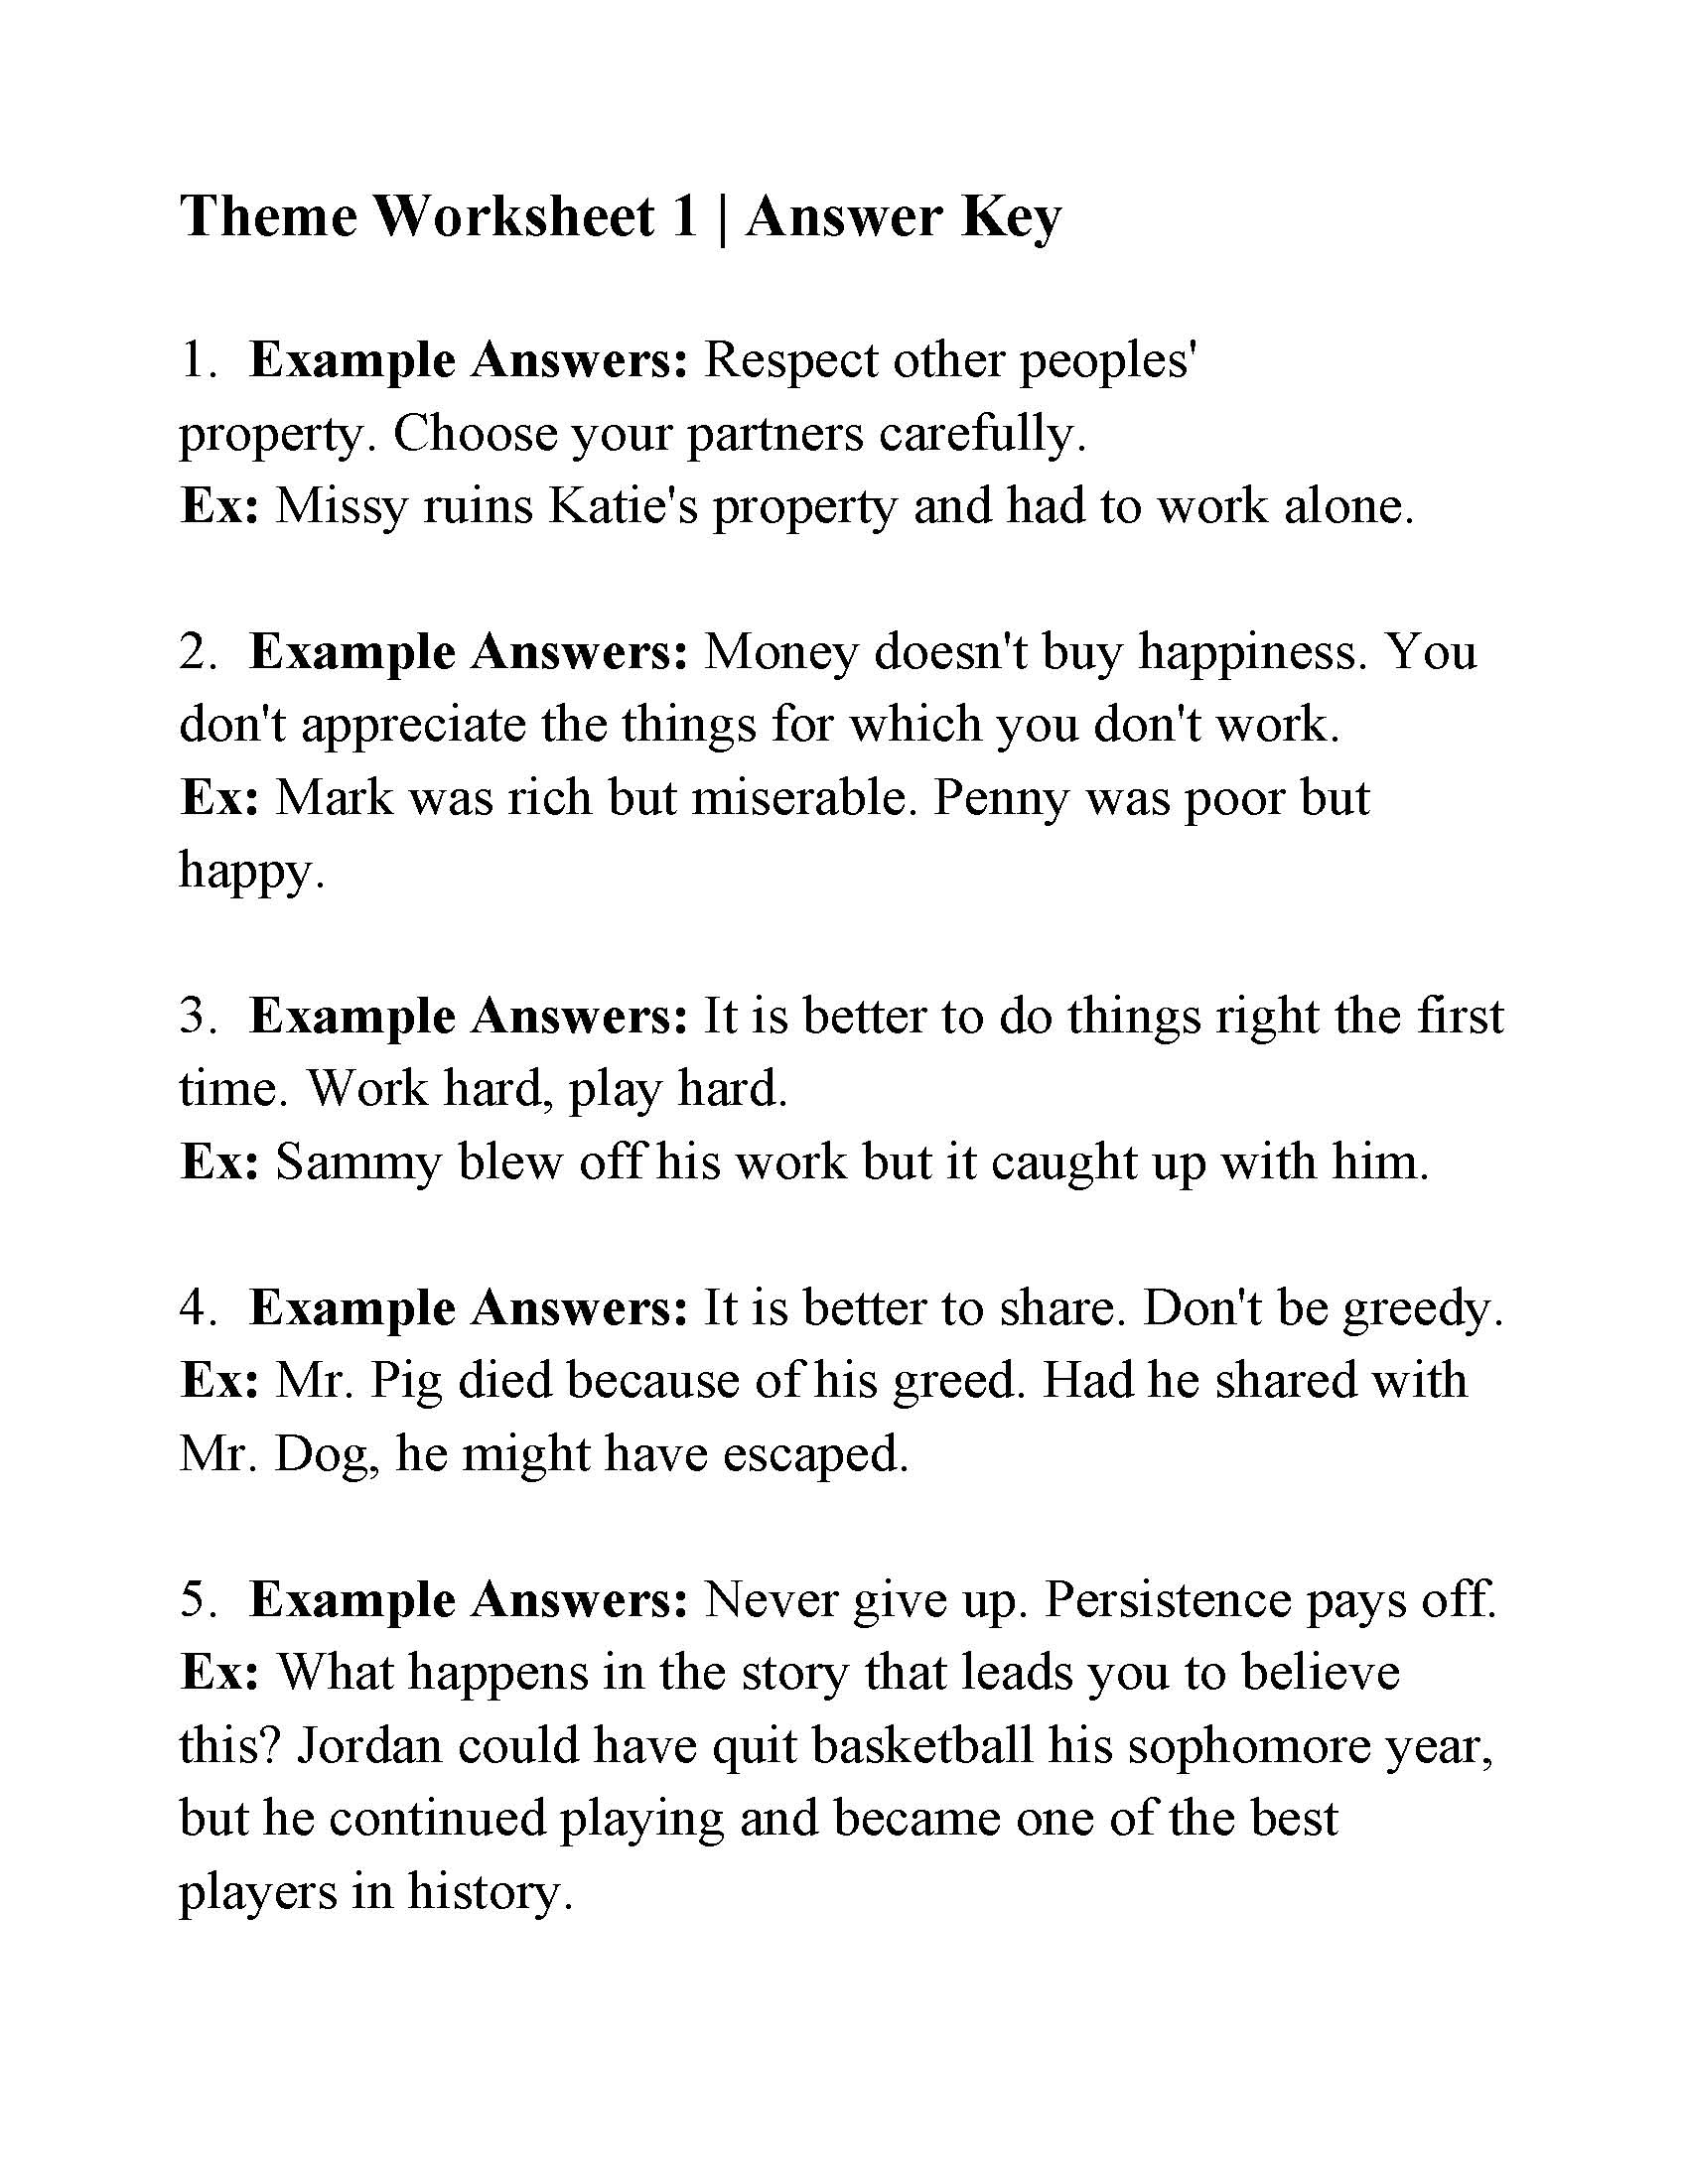 Theme Worksheet 1 Reading Activity These are 3 easy ways that don't require any additional software or any specific skills. theme worksheet 1 reading activity